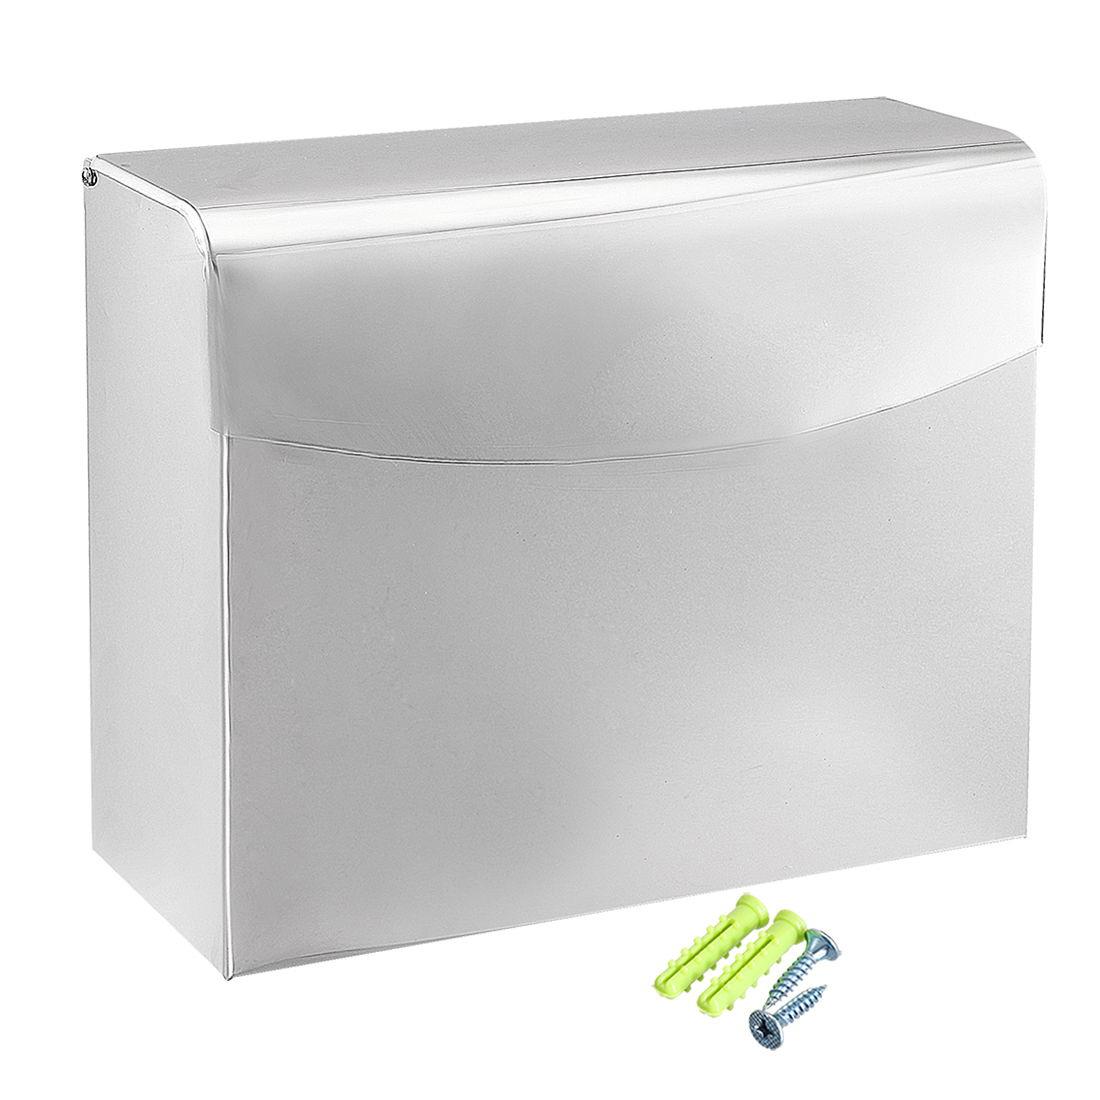 Bathroom Lavatory Toilet Paper Holder w Cover Stainless Steel Glossy Polished Finish K30C